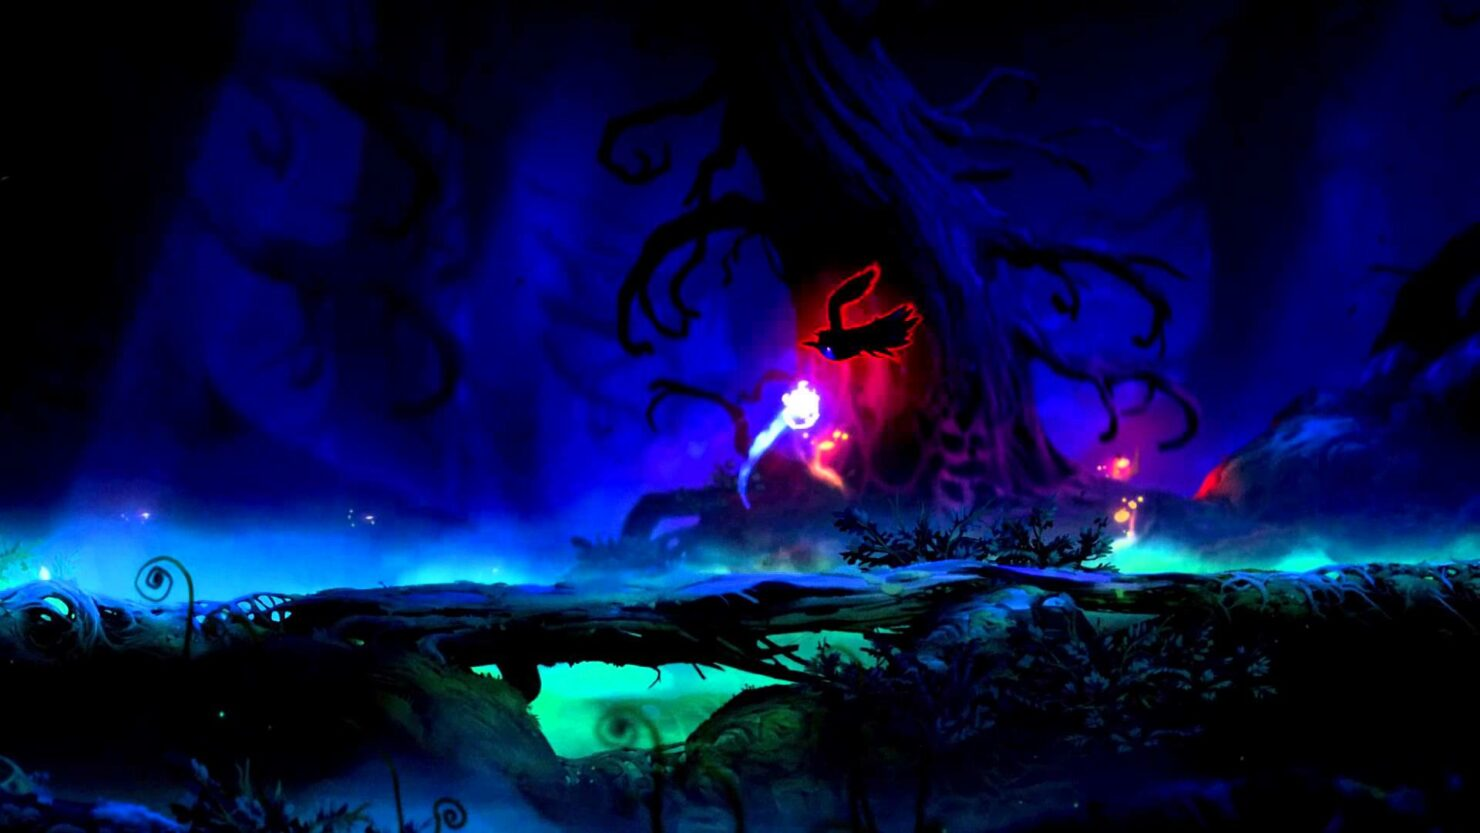 ori-and-the-blind-forest-3